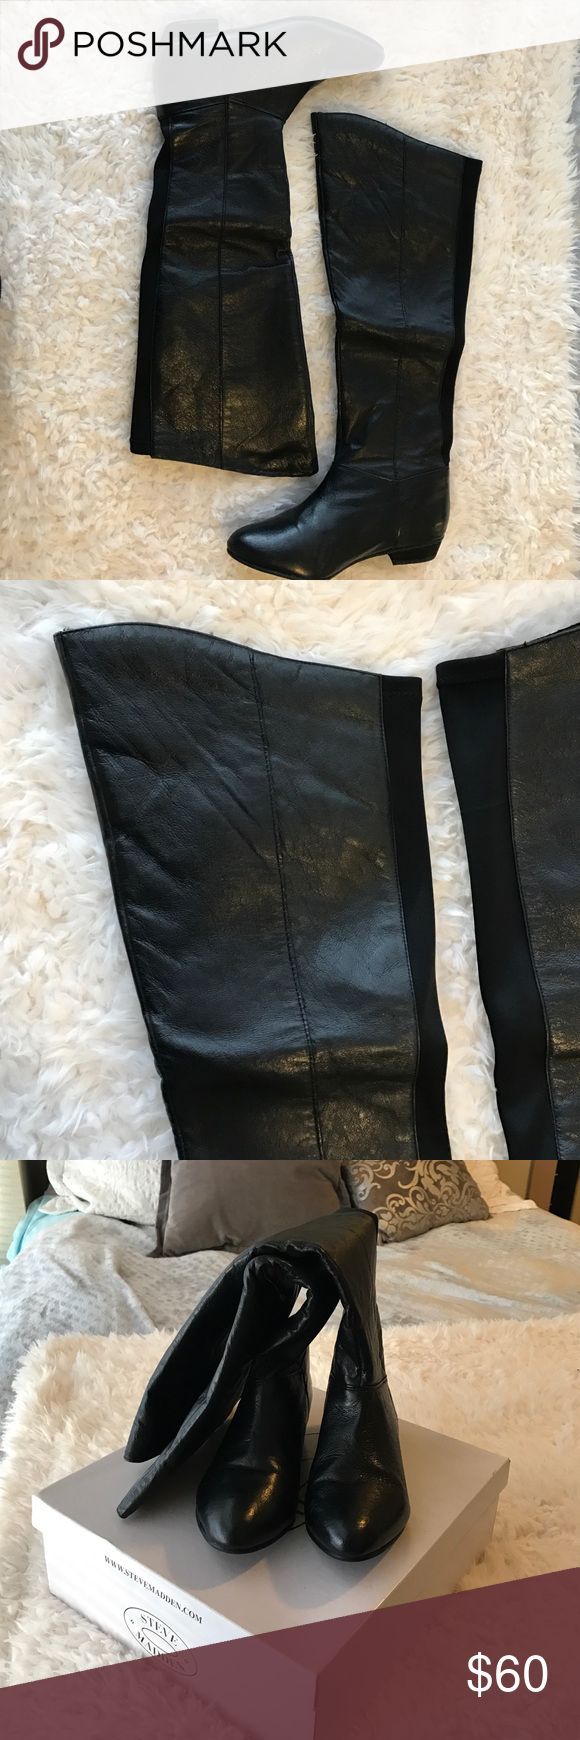 Knee high boots Steve Madden leather knee high boots with black stretch strip along the back for accent and comfort. These would look super cute with leggings or skinny jeans for every day or going out! :) Steve Madden Shoes Over the Knee Boots